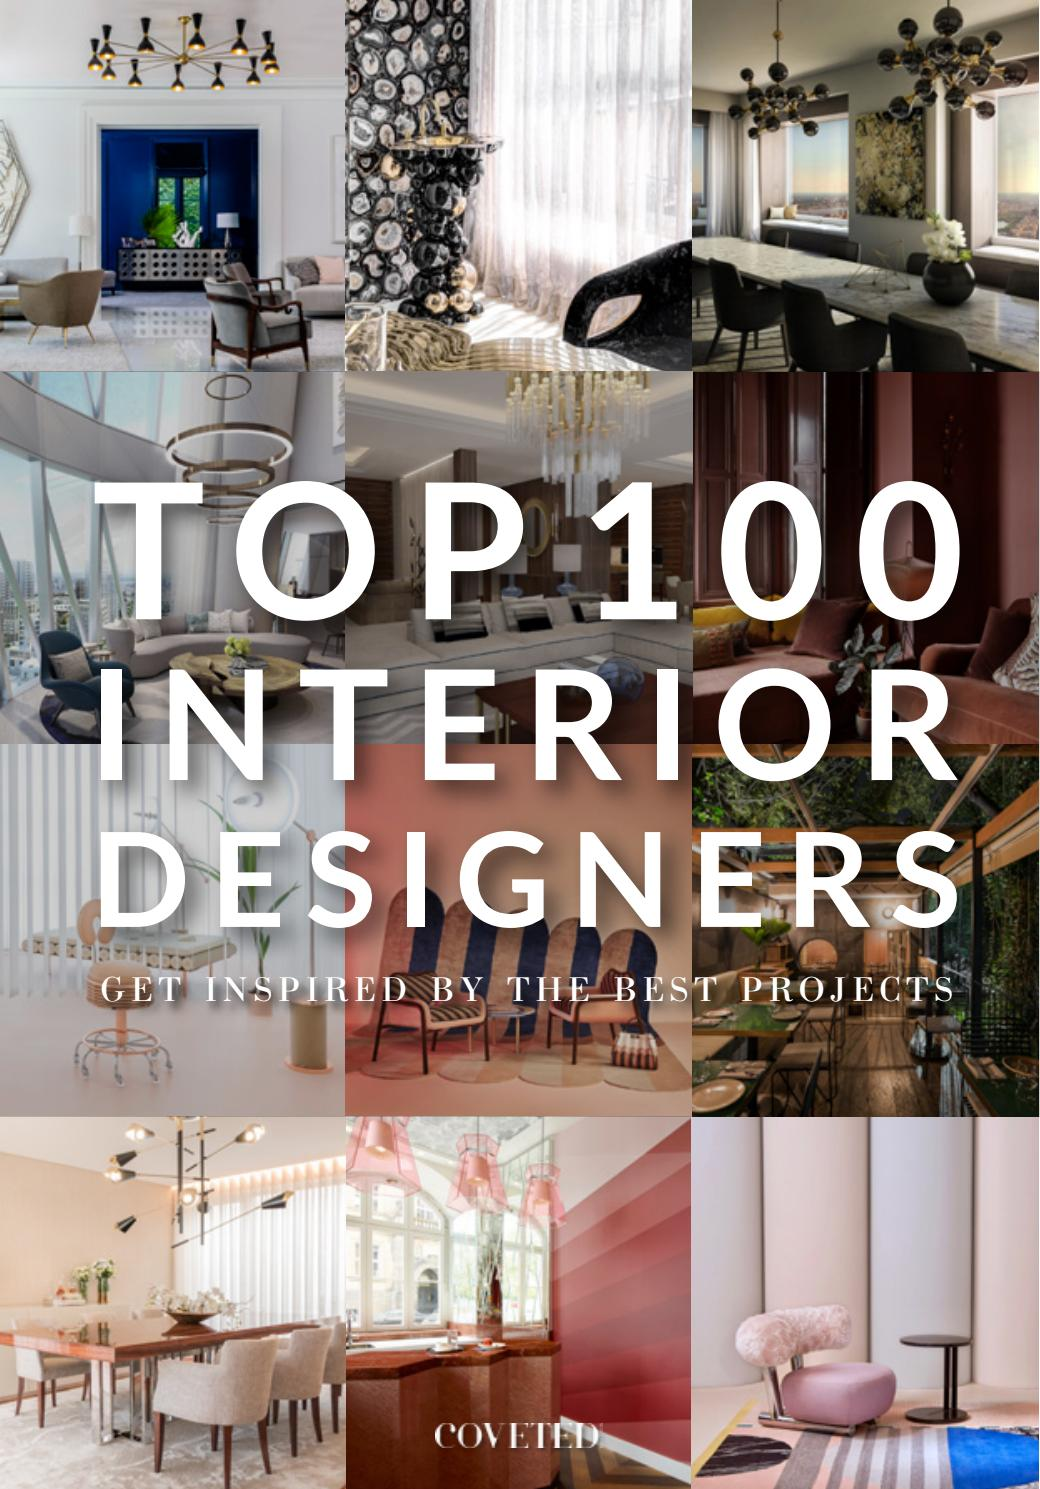 Top 100 Interior Designers And Architects Of 2019 By Trend Design Book Issuu